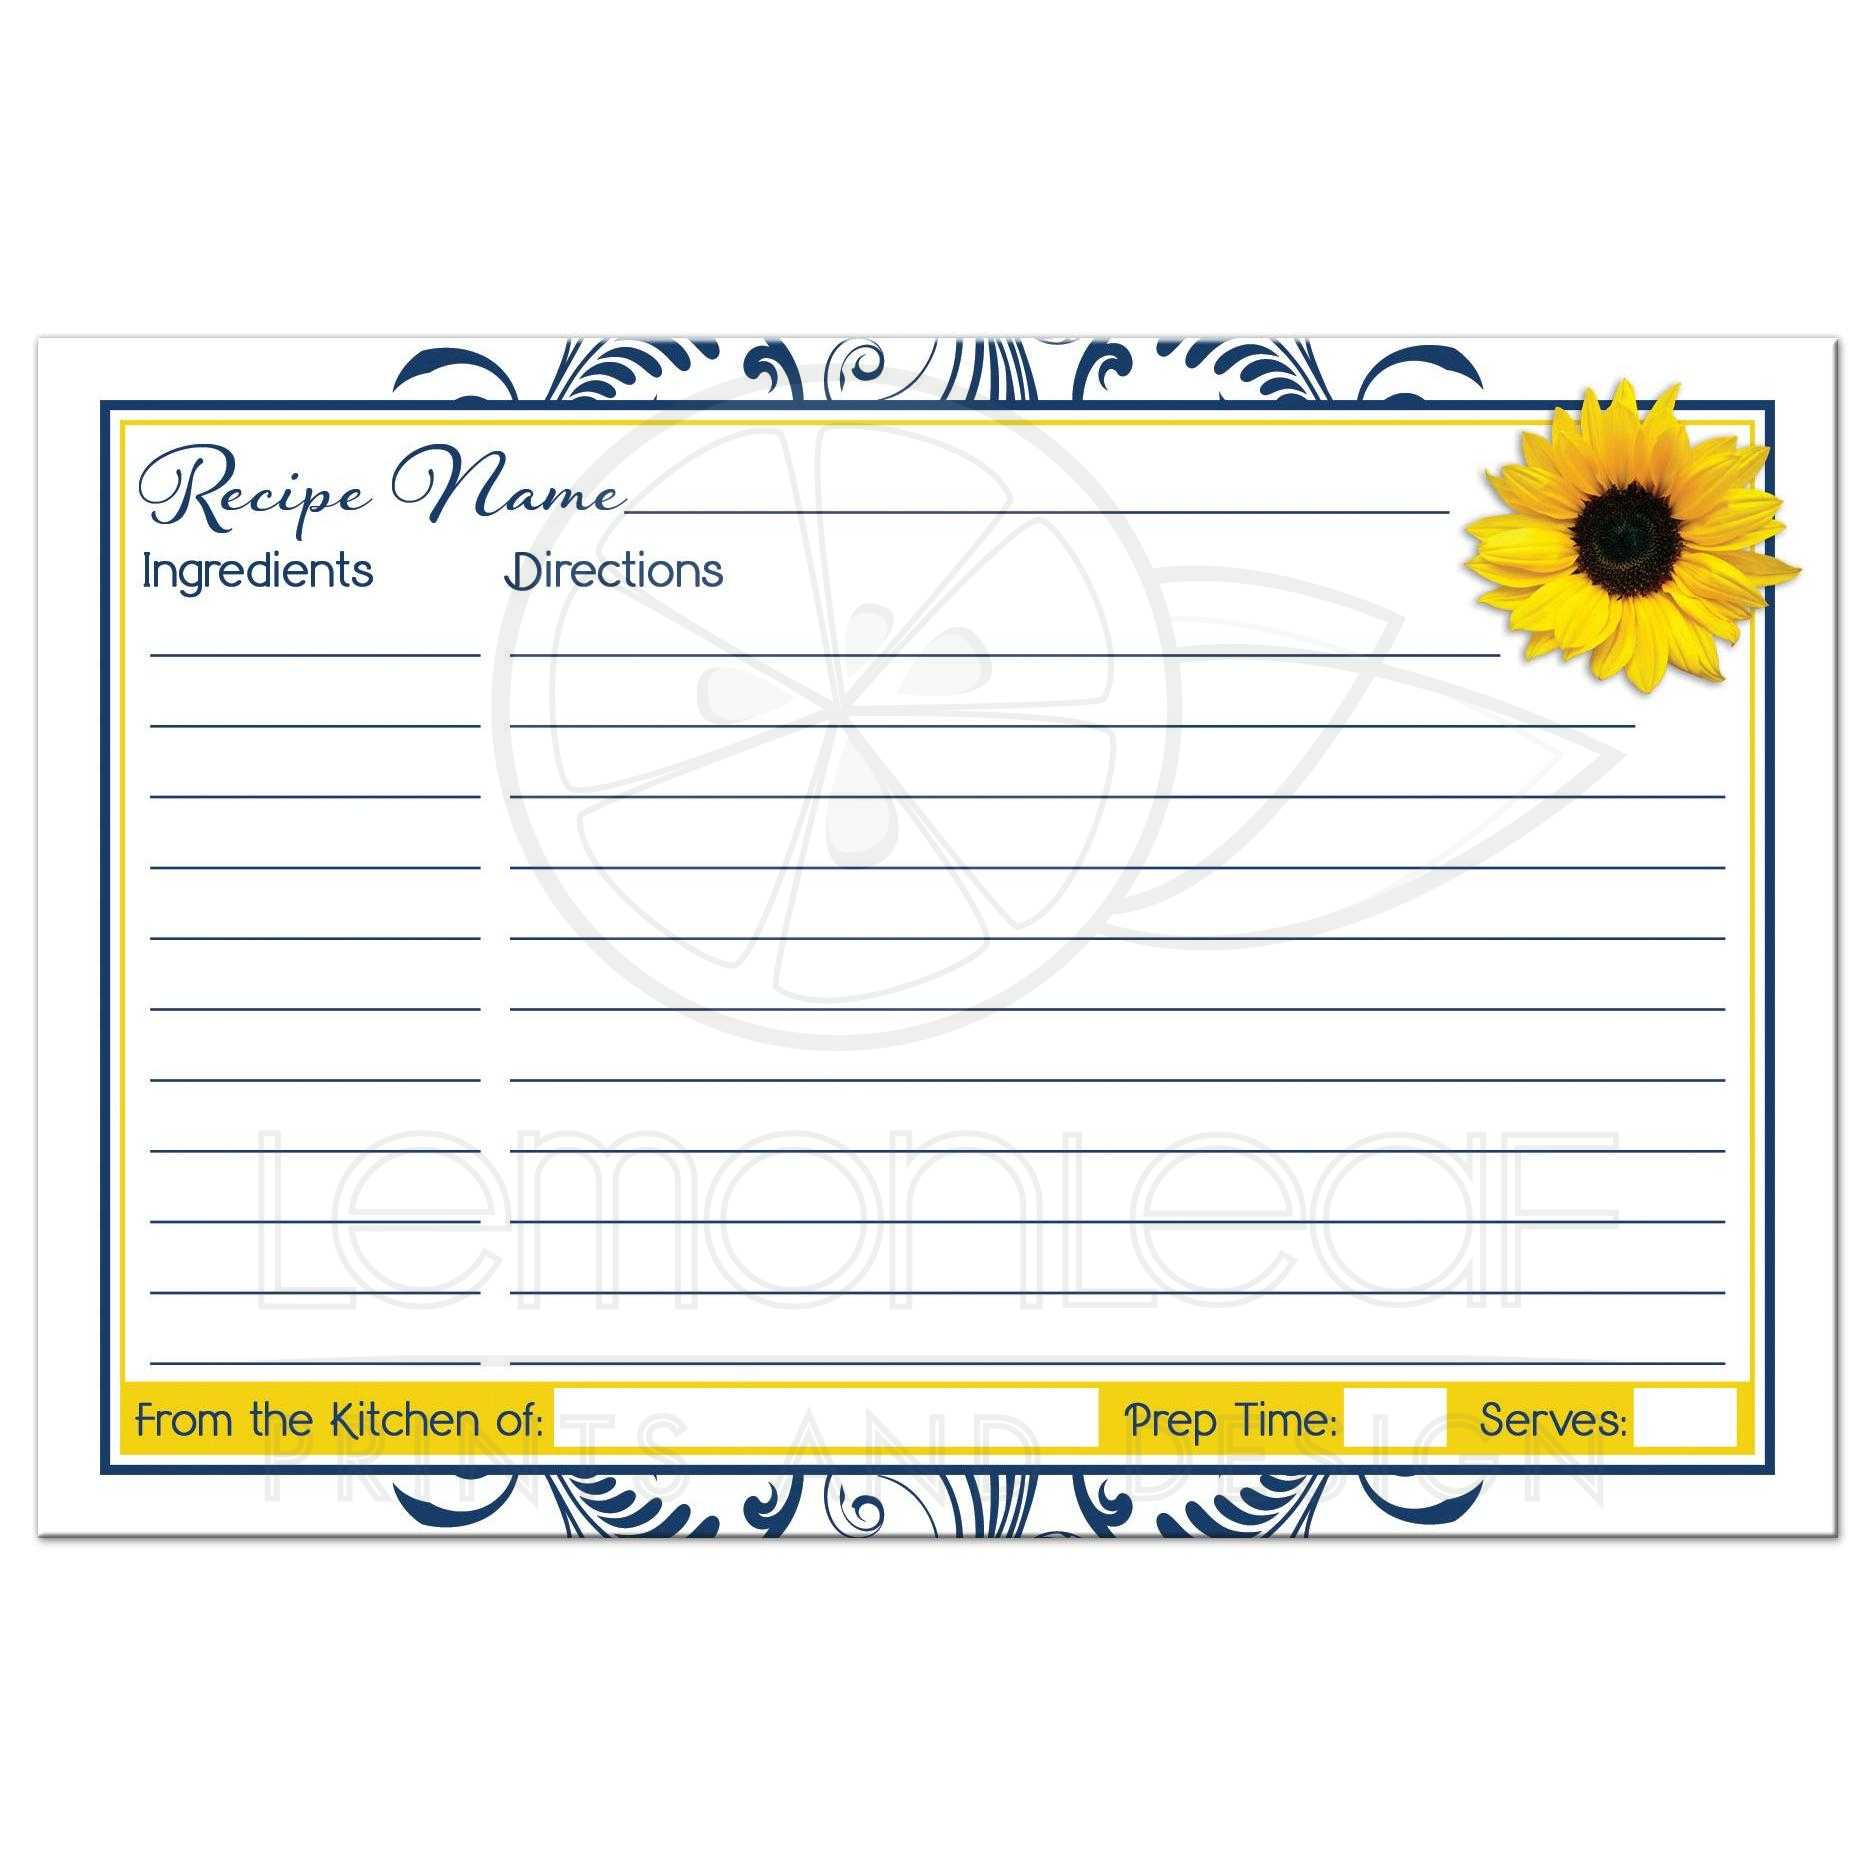 navy blue and white floral yellow sunflower bridal shower recipe card back